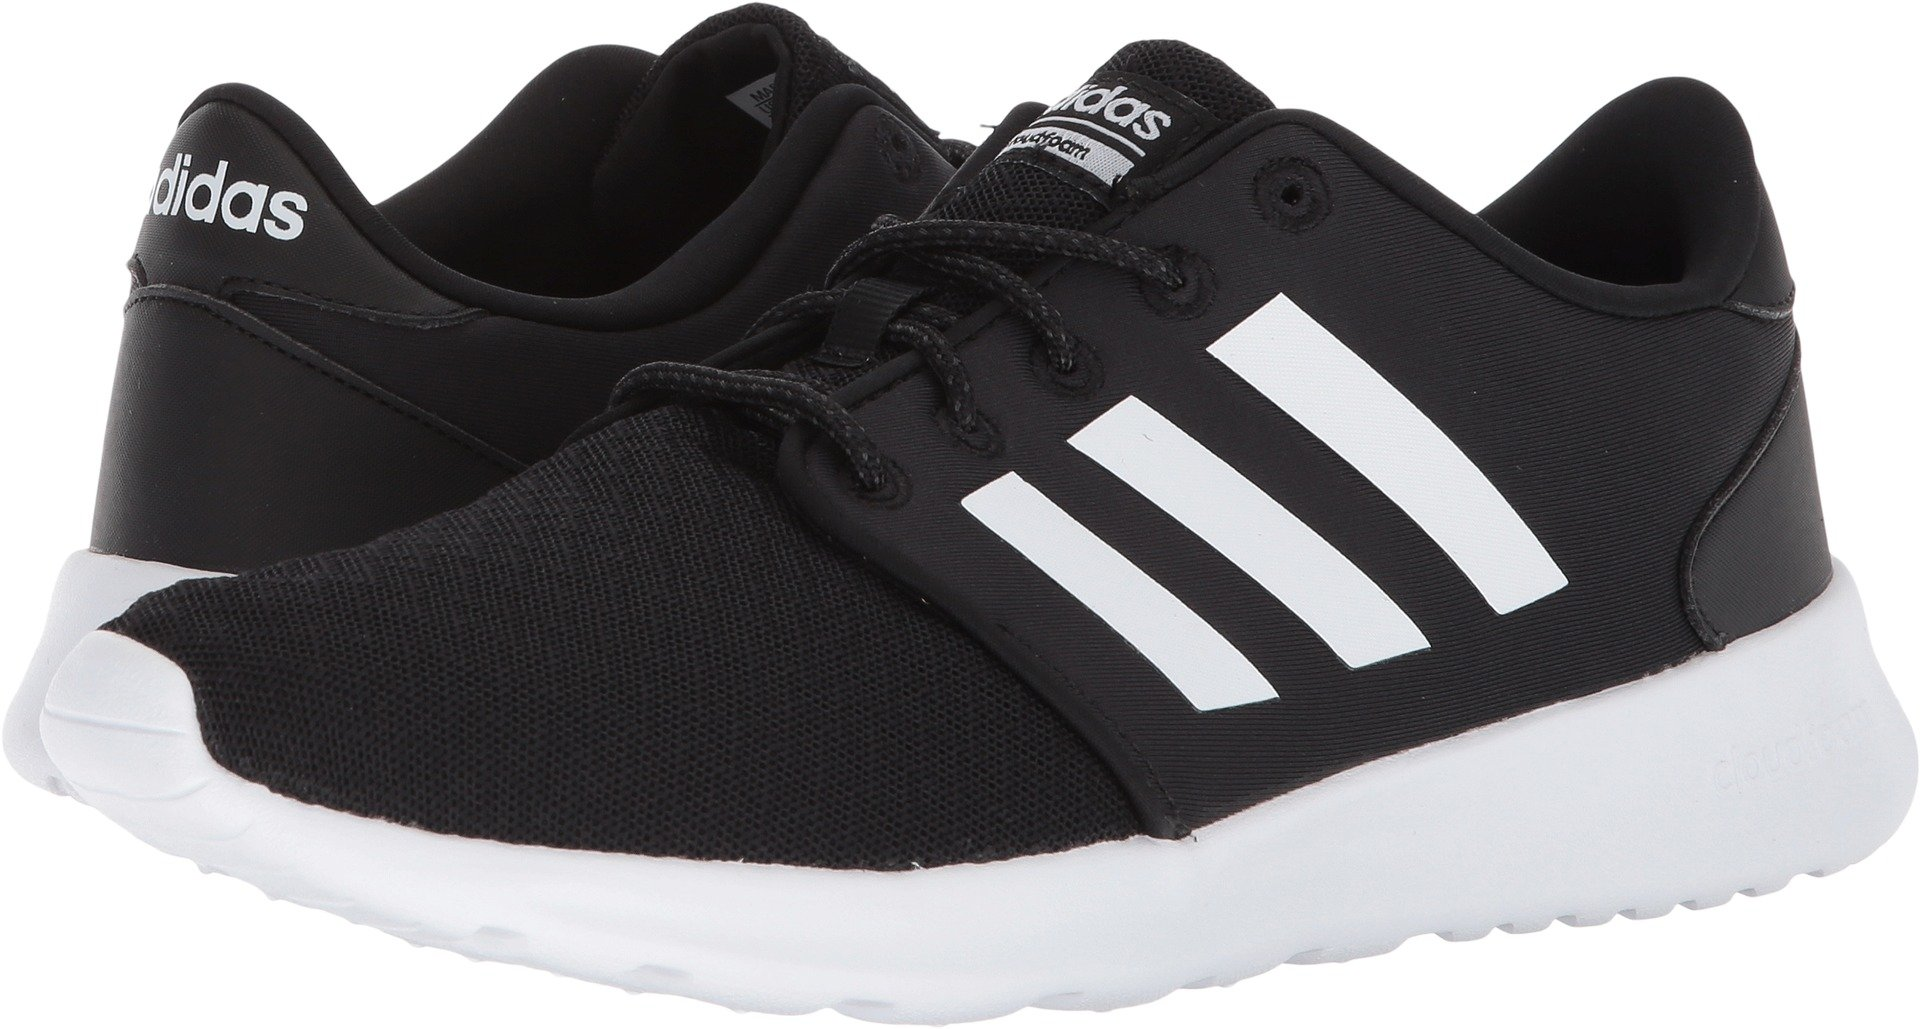 adidas Women's Cloudfoam QT Racer Running Shoe, Black/White/Carbon, 7 M US